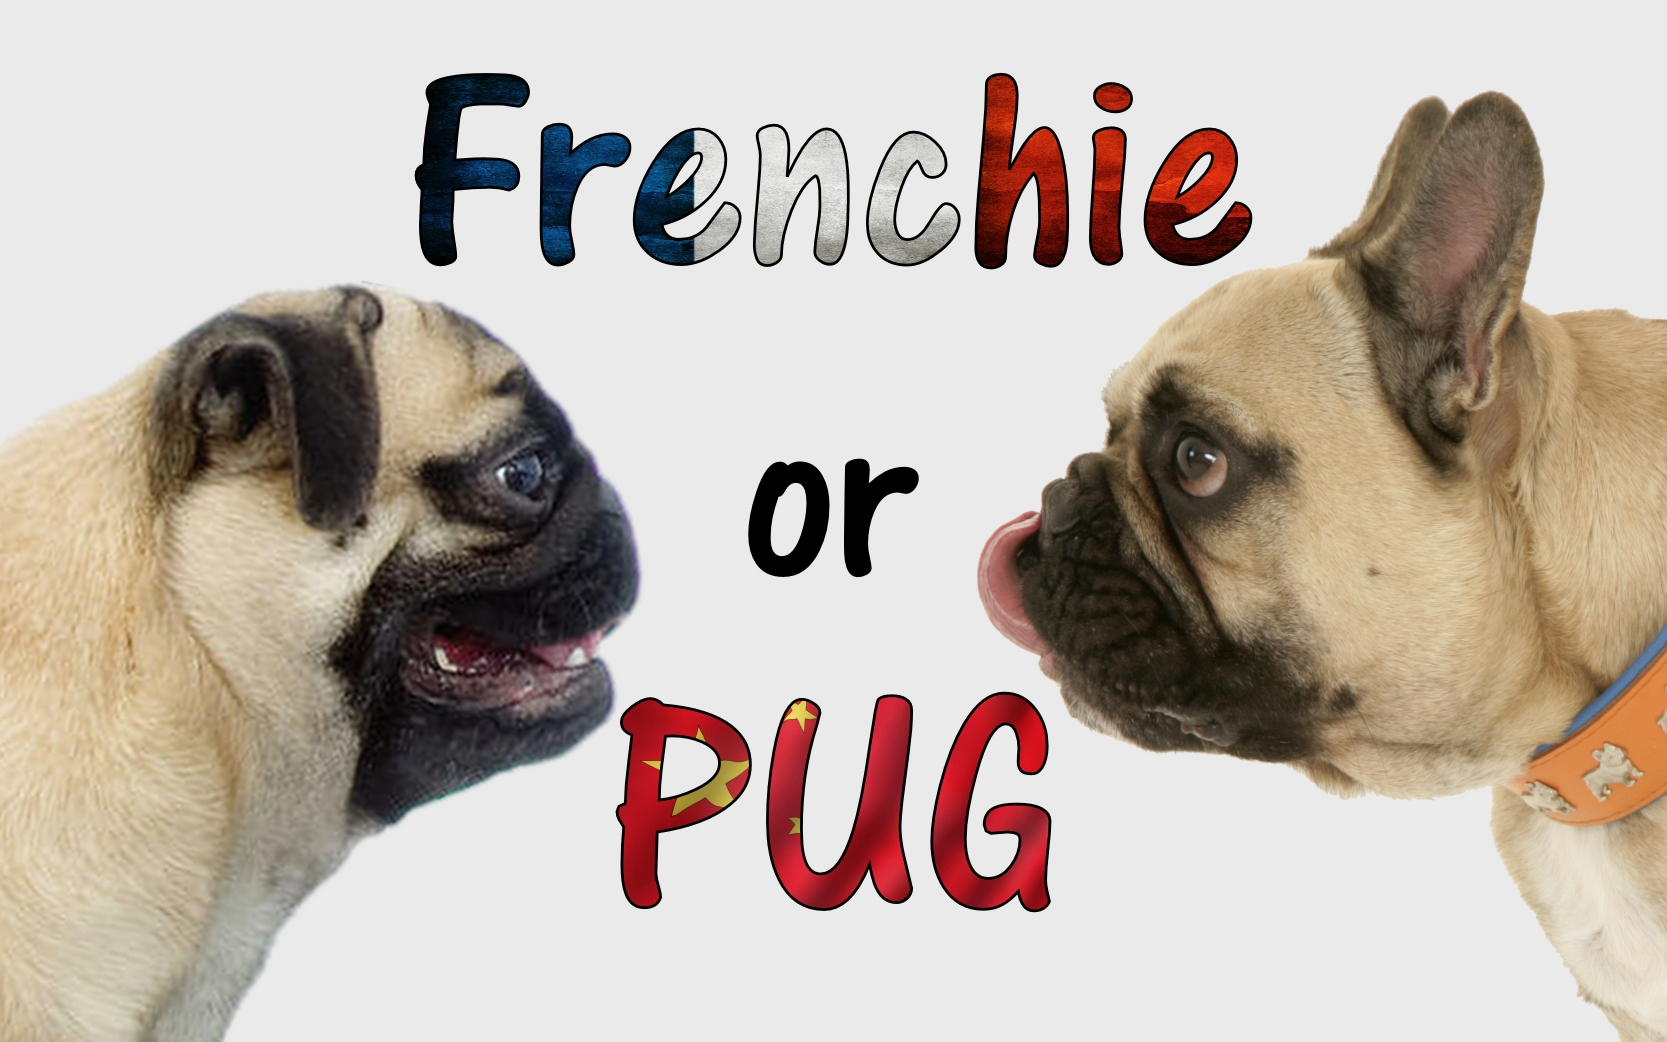 French Bulldog Or Pug How To Tell The Difference Dogaholic